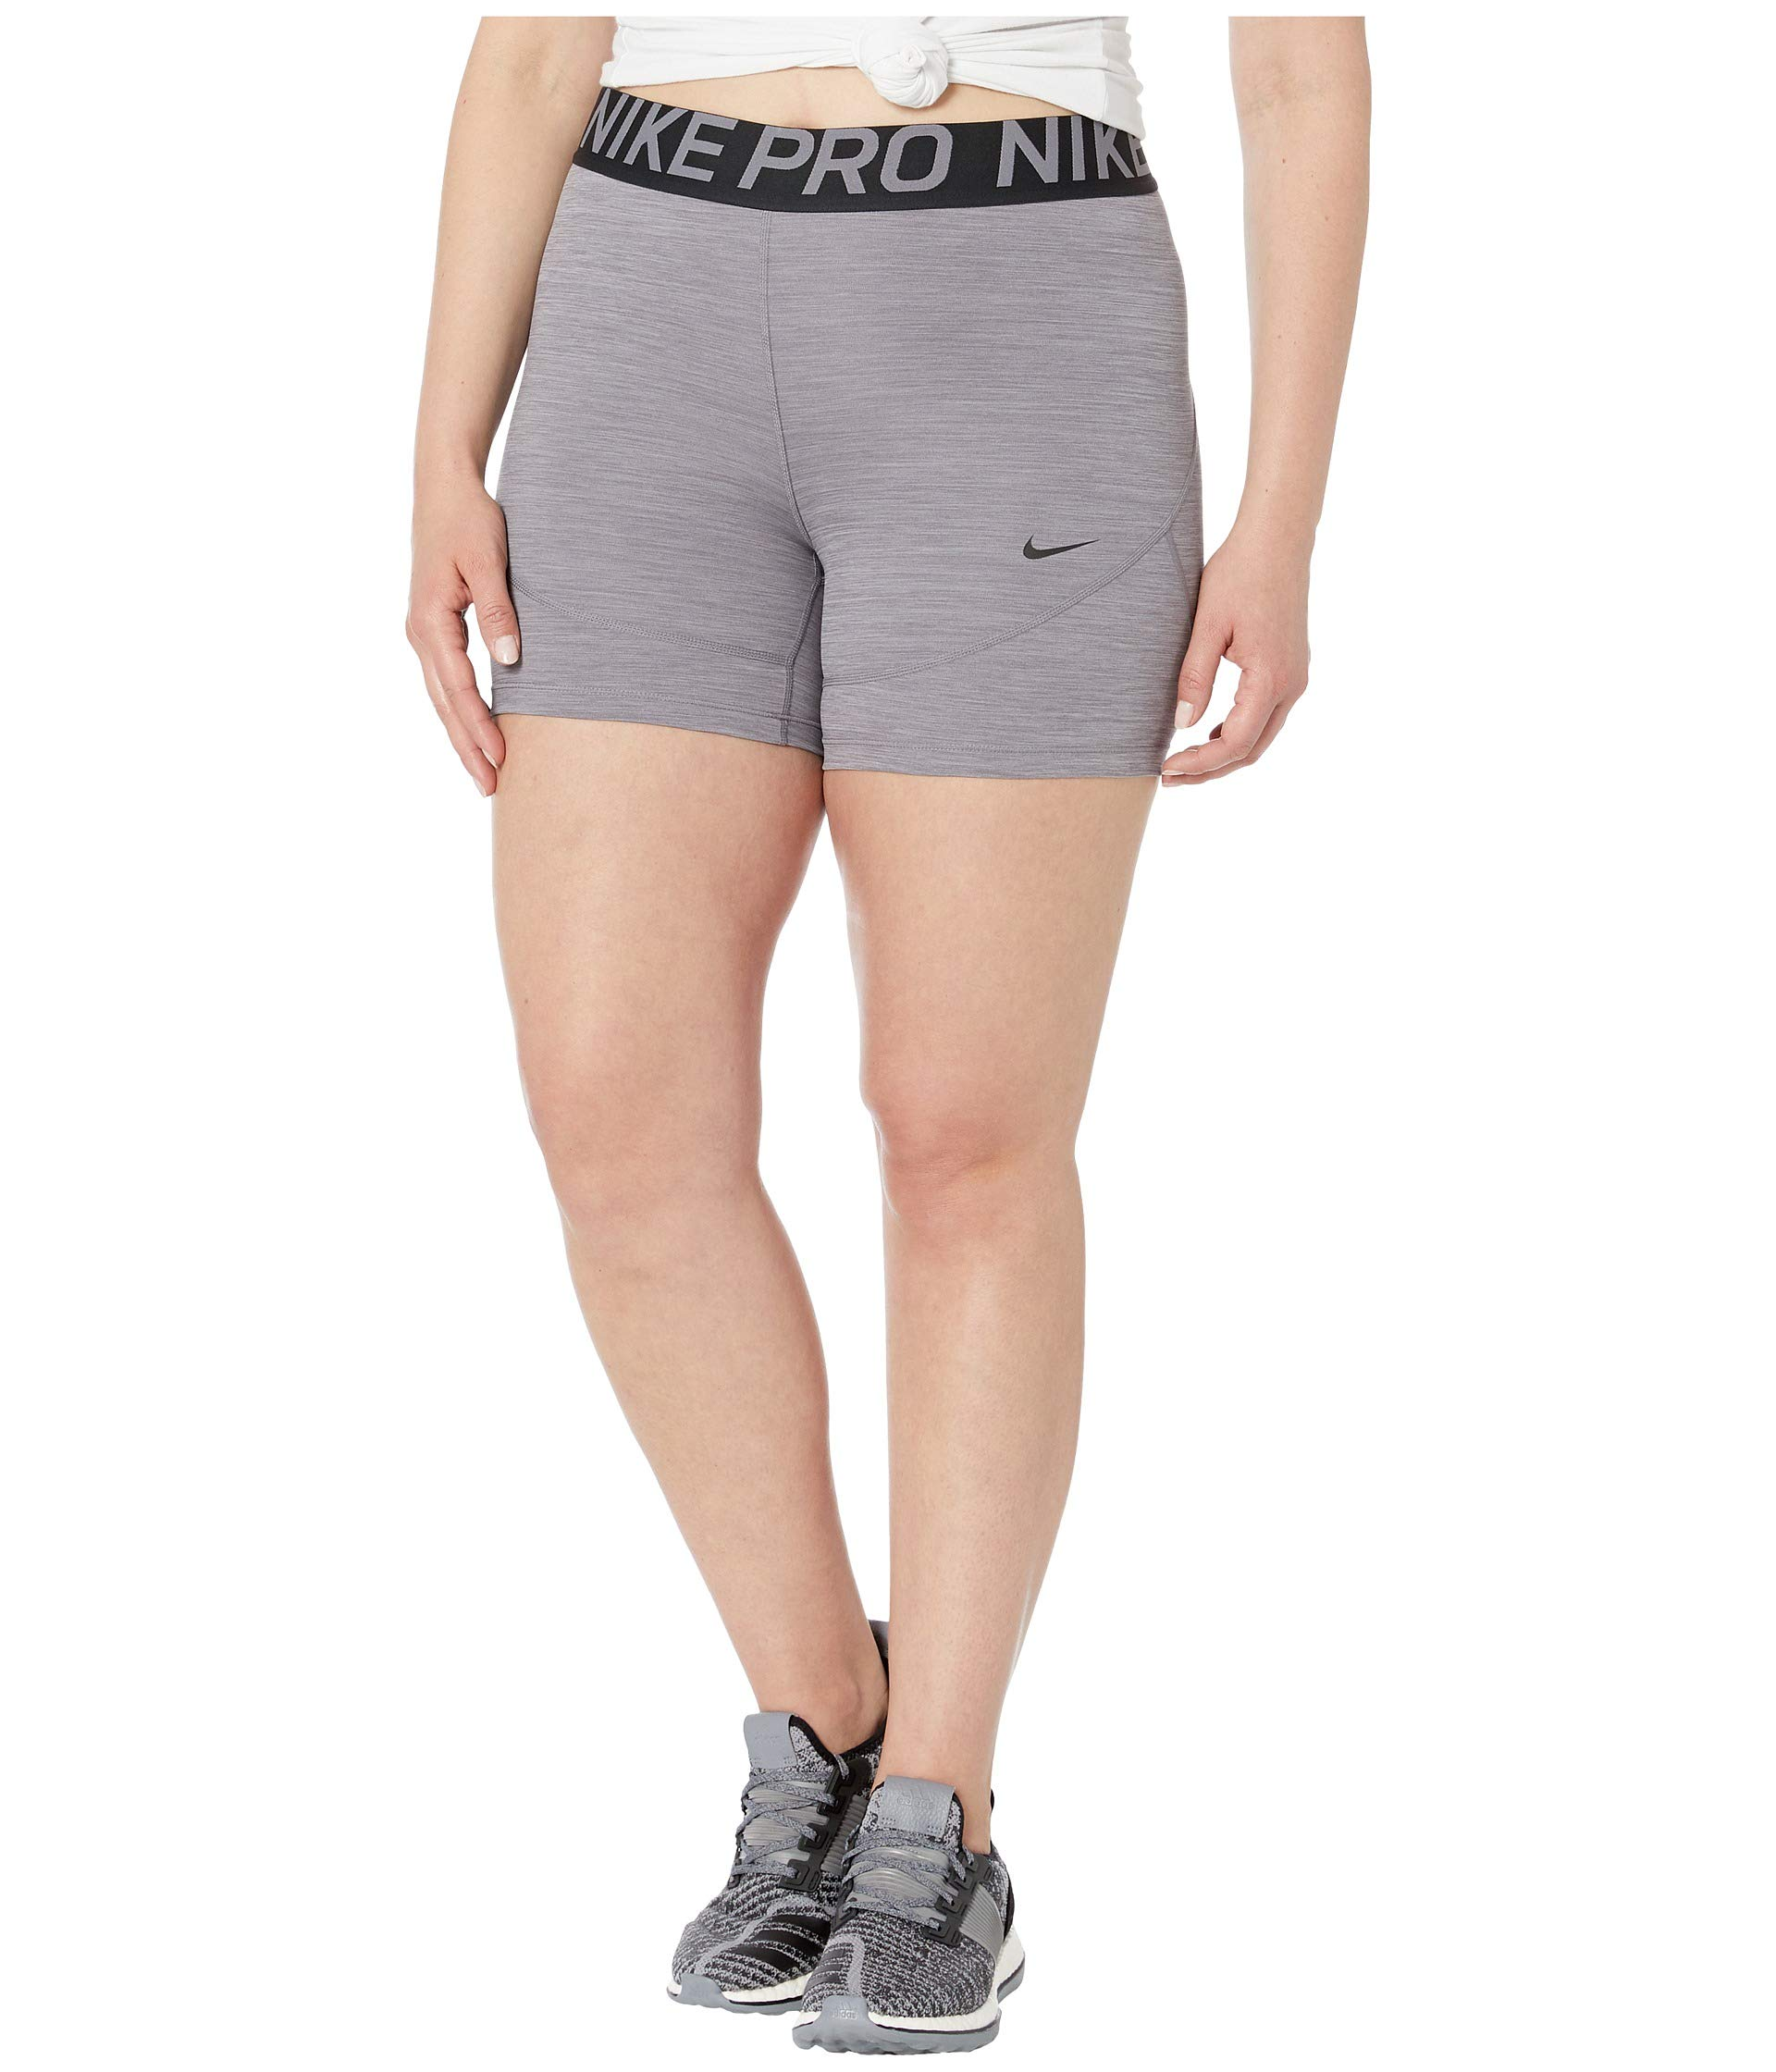 Nike Womens Pro 5 Training Shorts (Large, Gunsmoke) by Nike